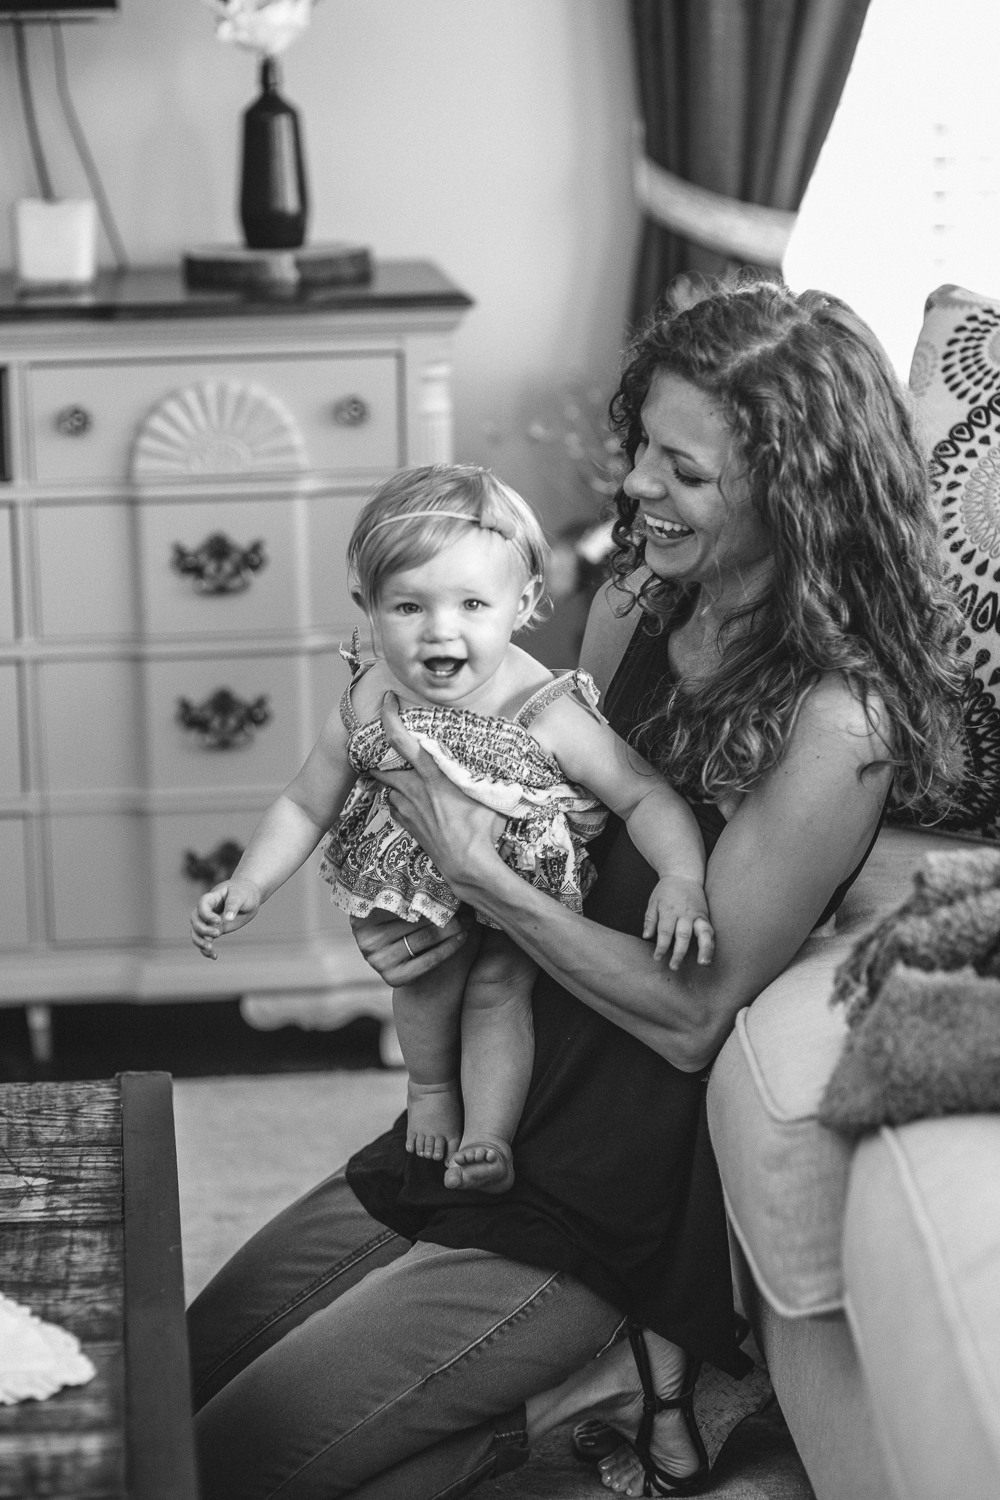 moriah_1_year_in_home_lifestyle_photography_tausha_ann_franklin_nashville_brentwood_one_year-4